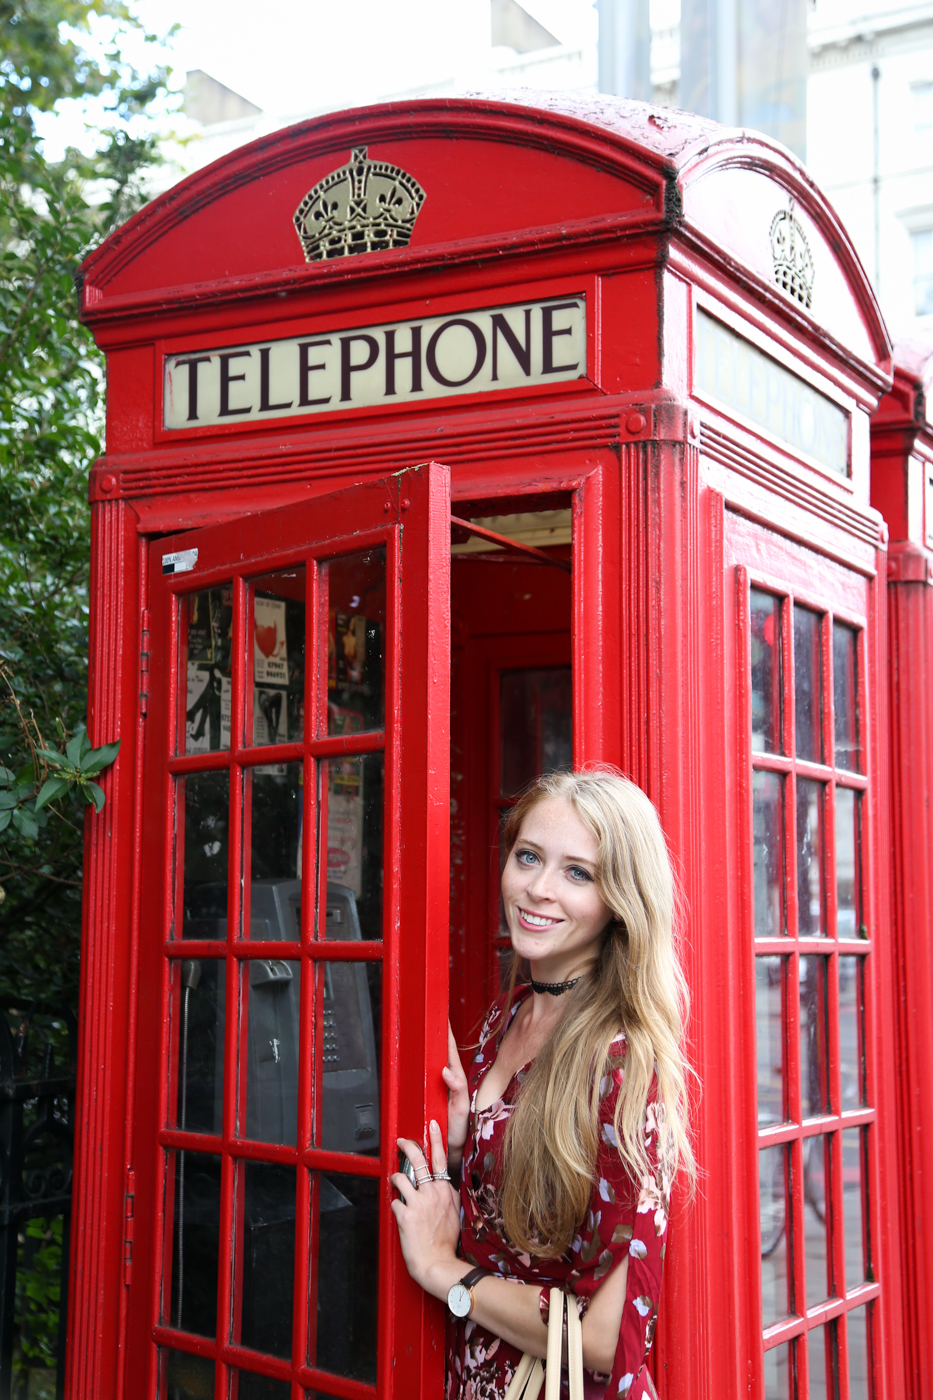 red phone booth in london tourist photo